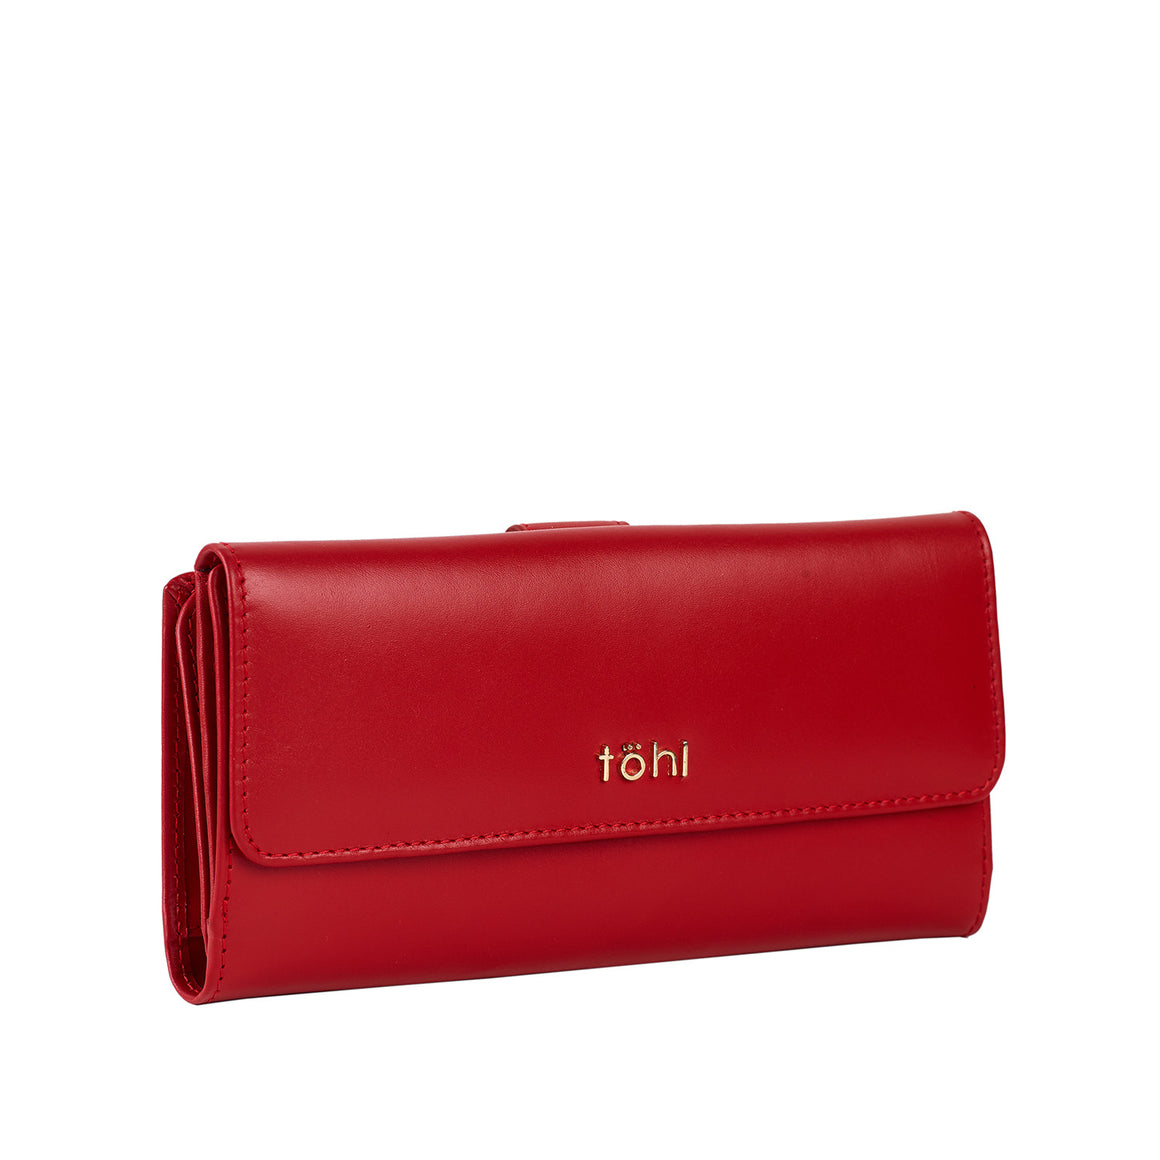 WT 0010 - TOHL LUDLOW WOMEN'S FLAPOVER WALLET - SPICE RED